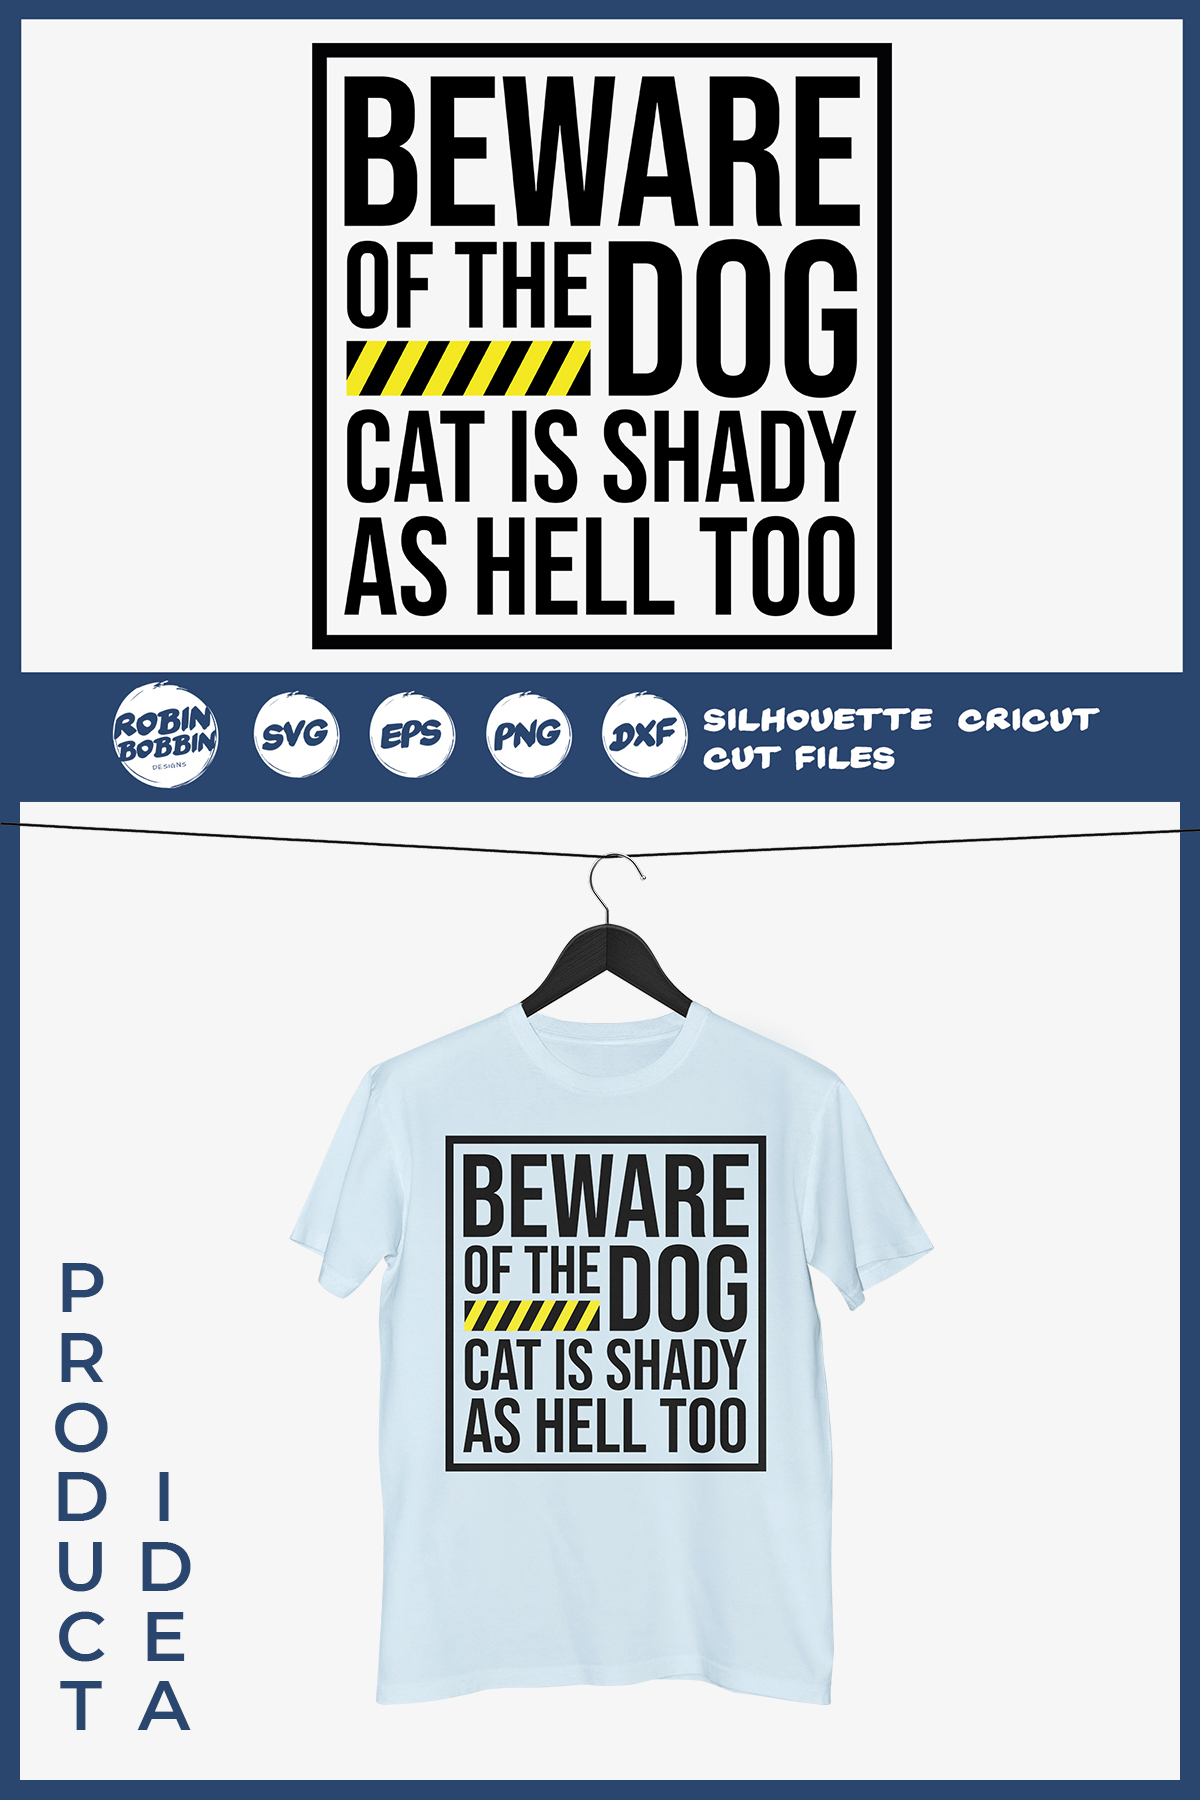 Beware Of Dog Cat is Shady As Hell Too - Dog Lover SVG File example image 2